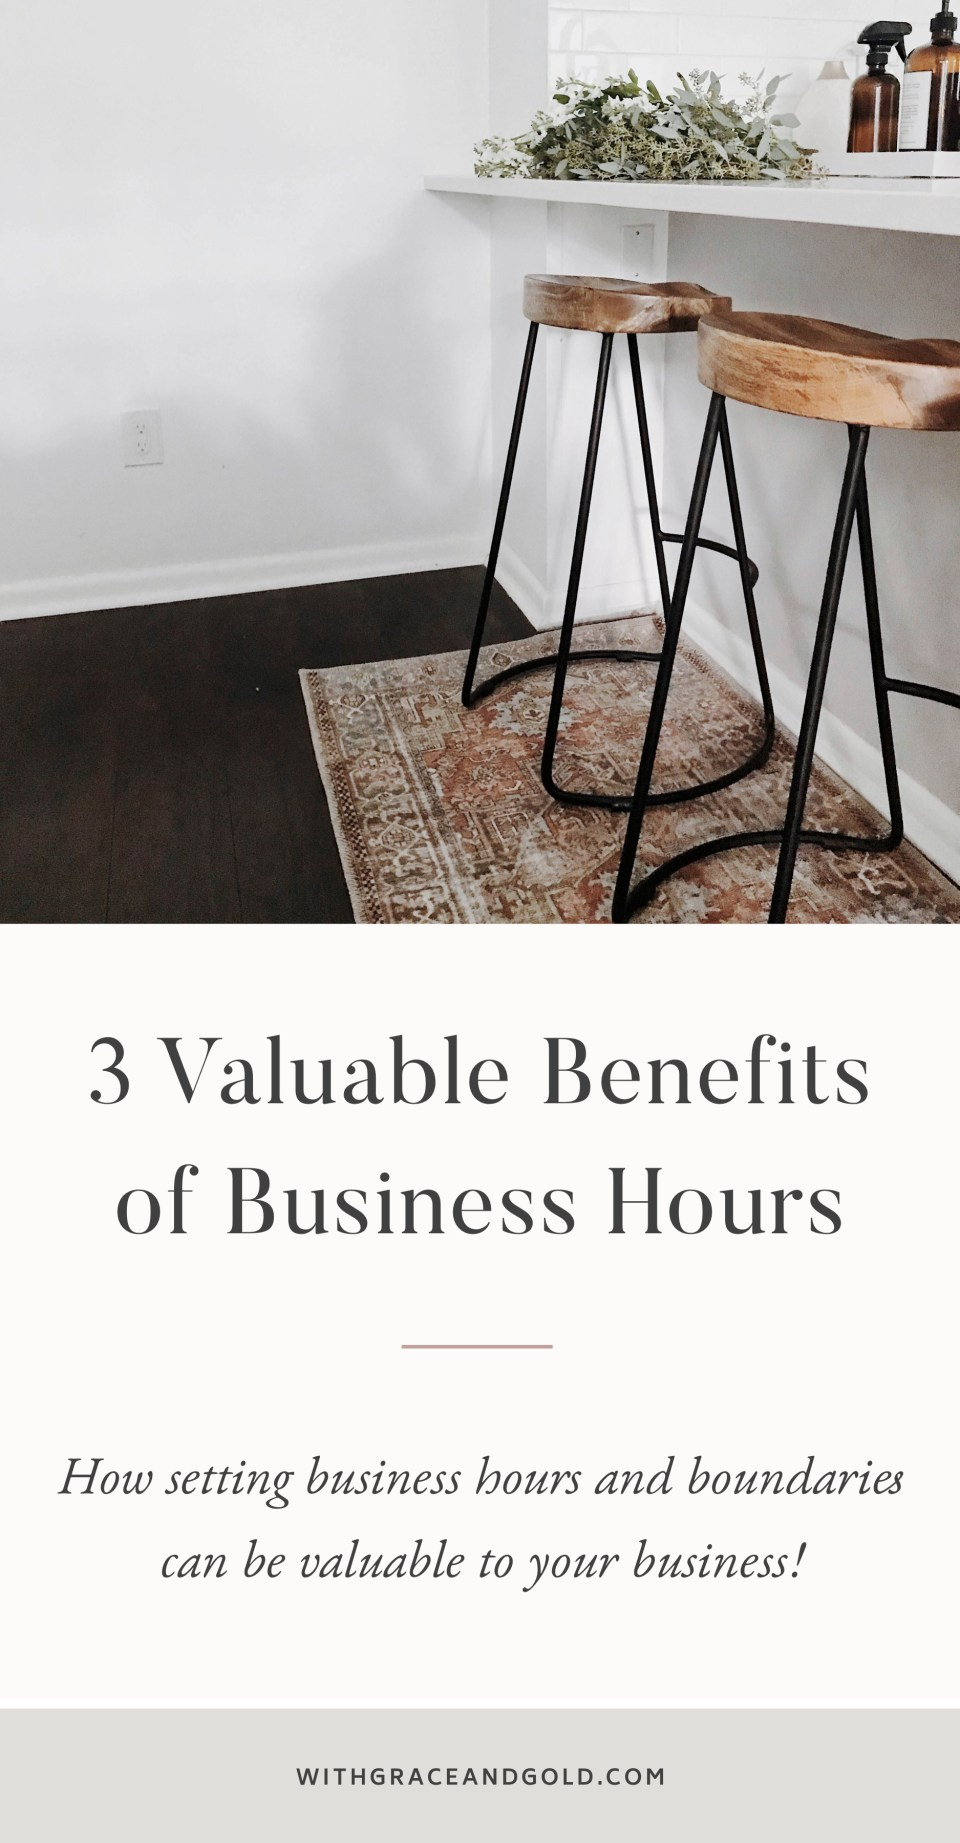 3 Valuable Benefits of Business Hours by With Grace and Gold